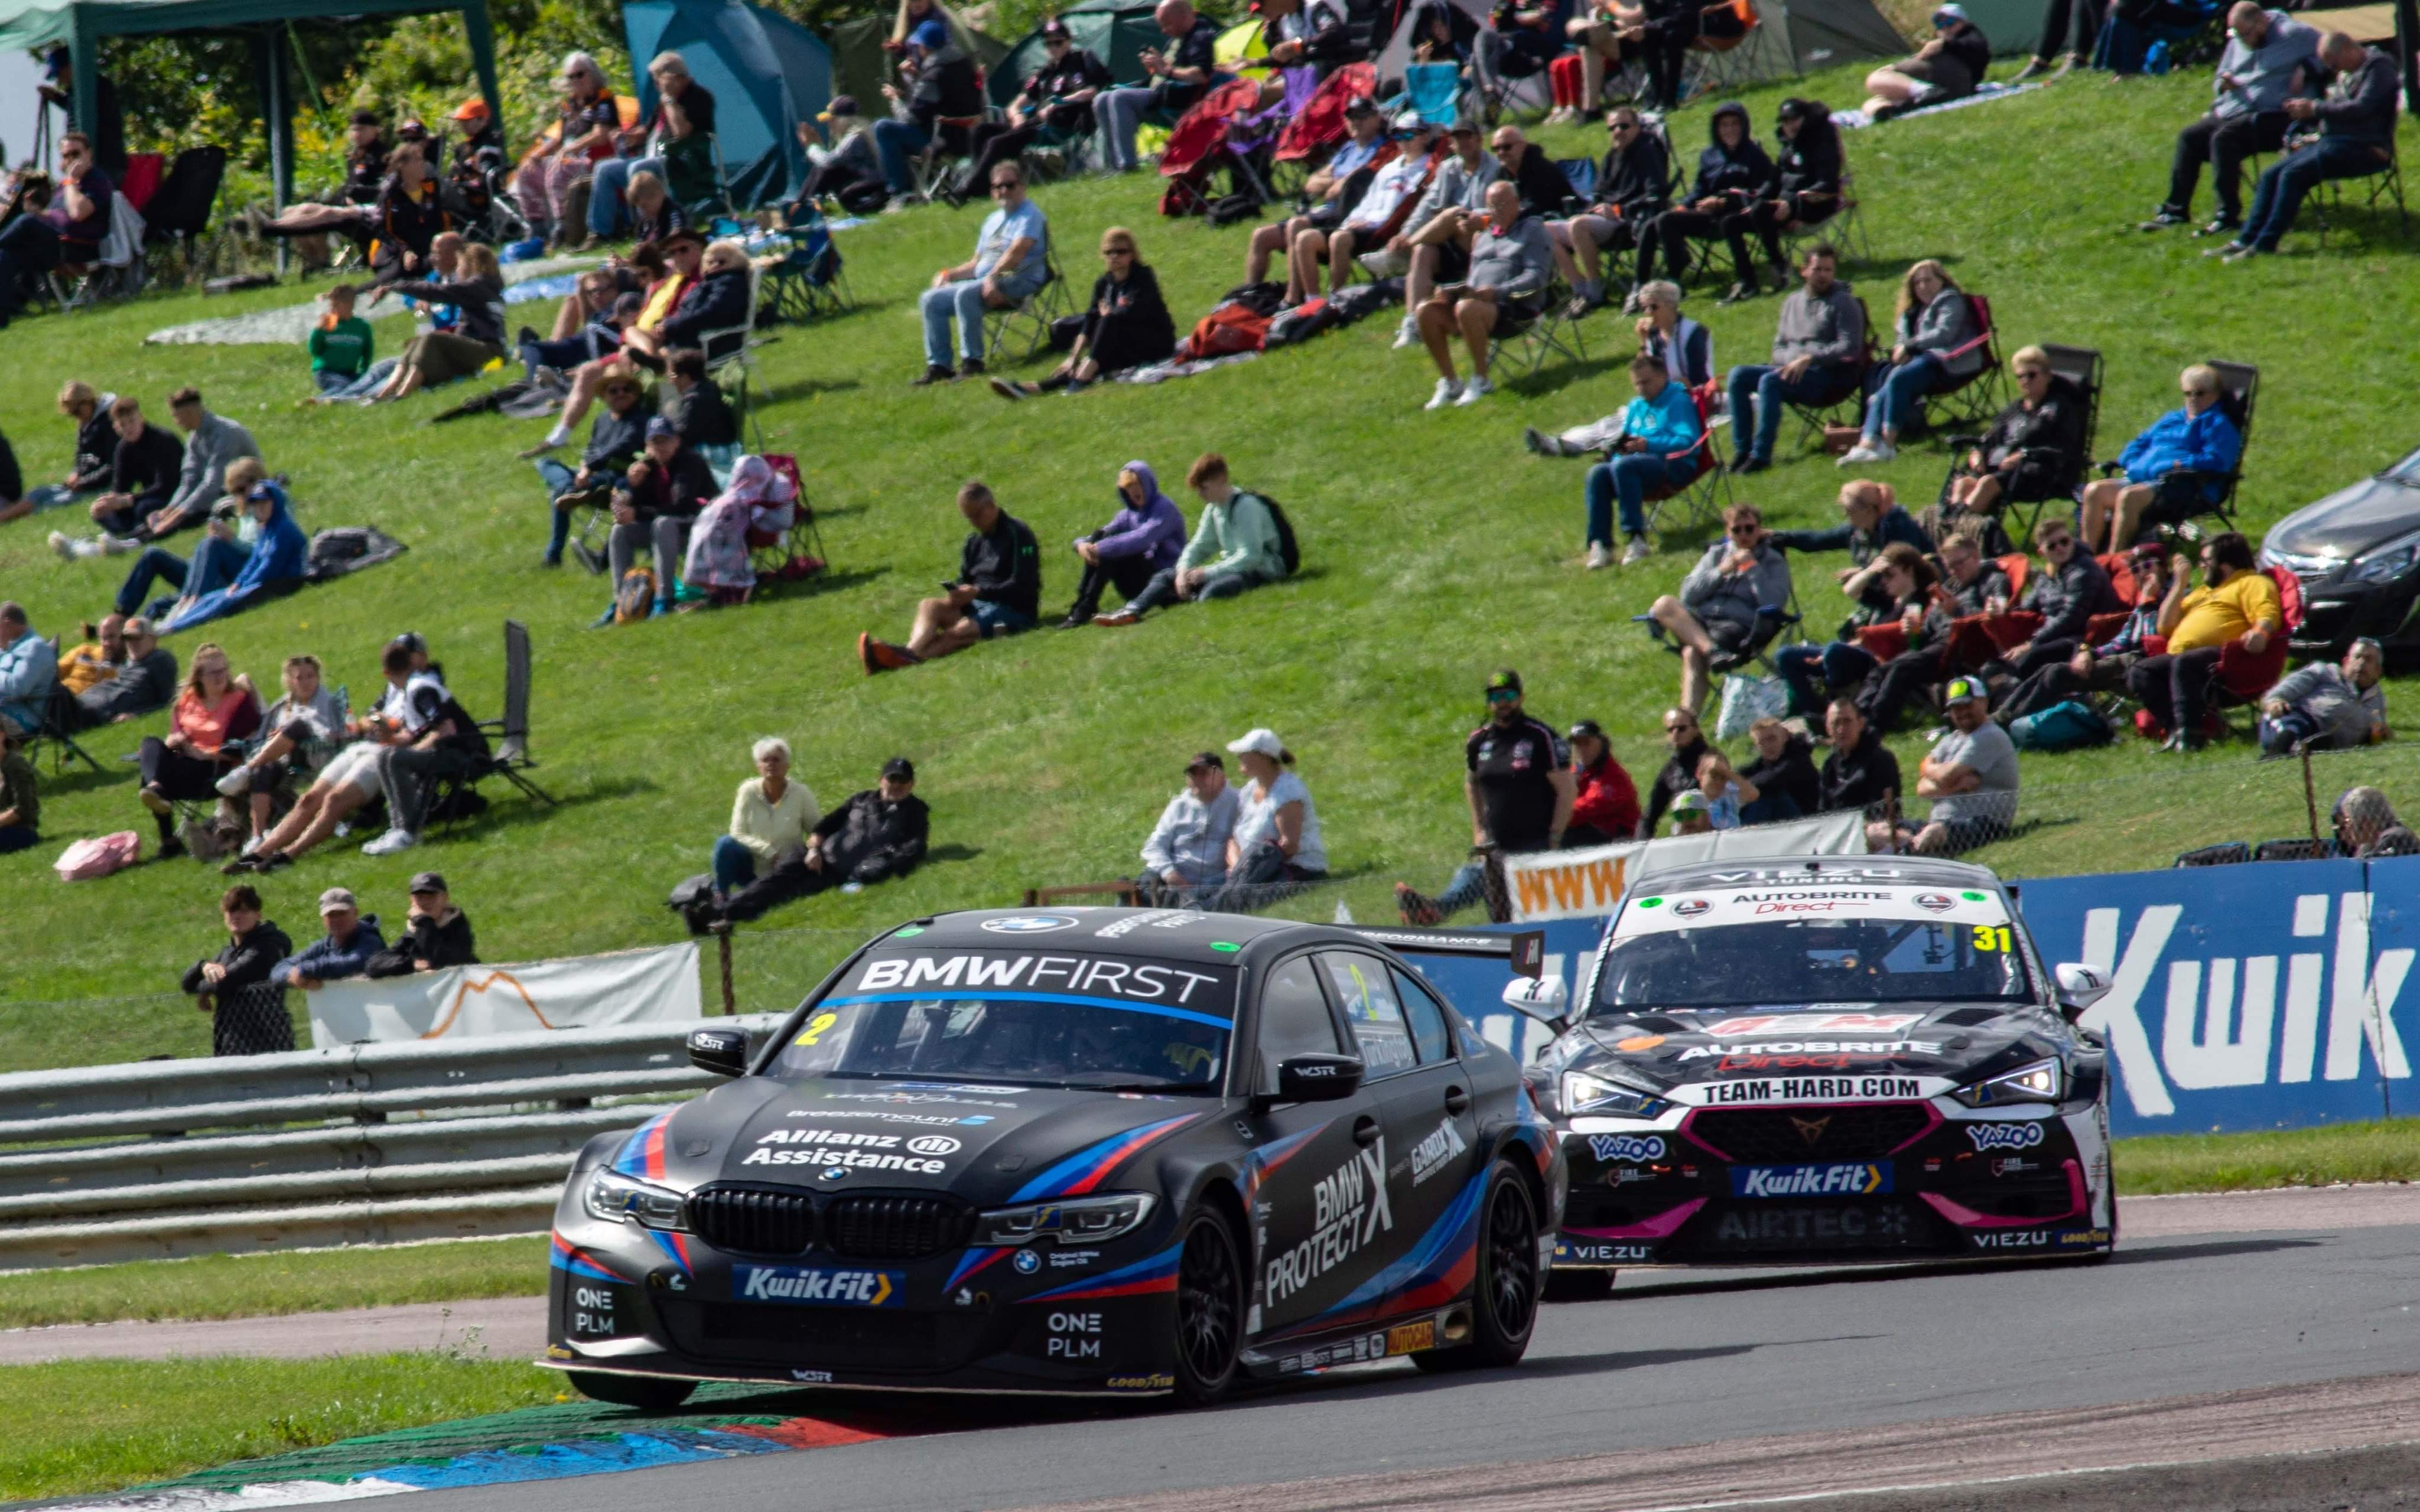 TIGHT AT THE TOP IN THRUXTON QUALIFYING